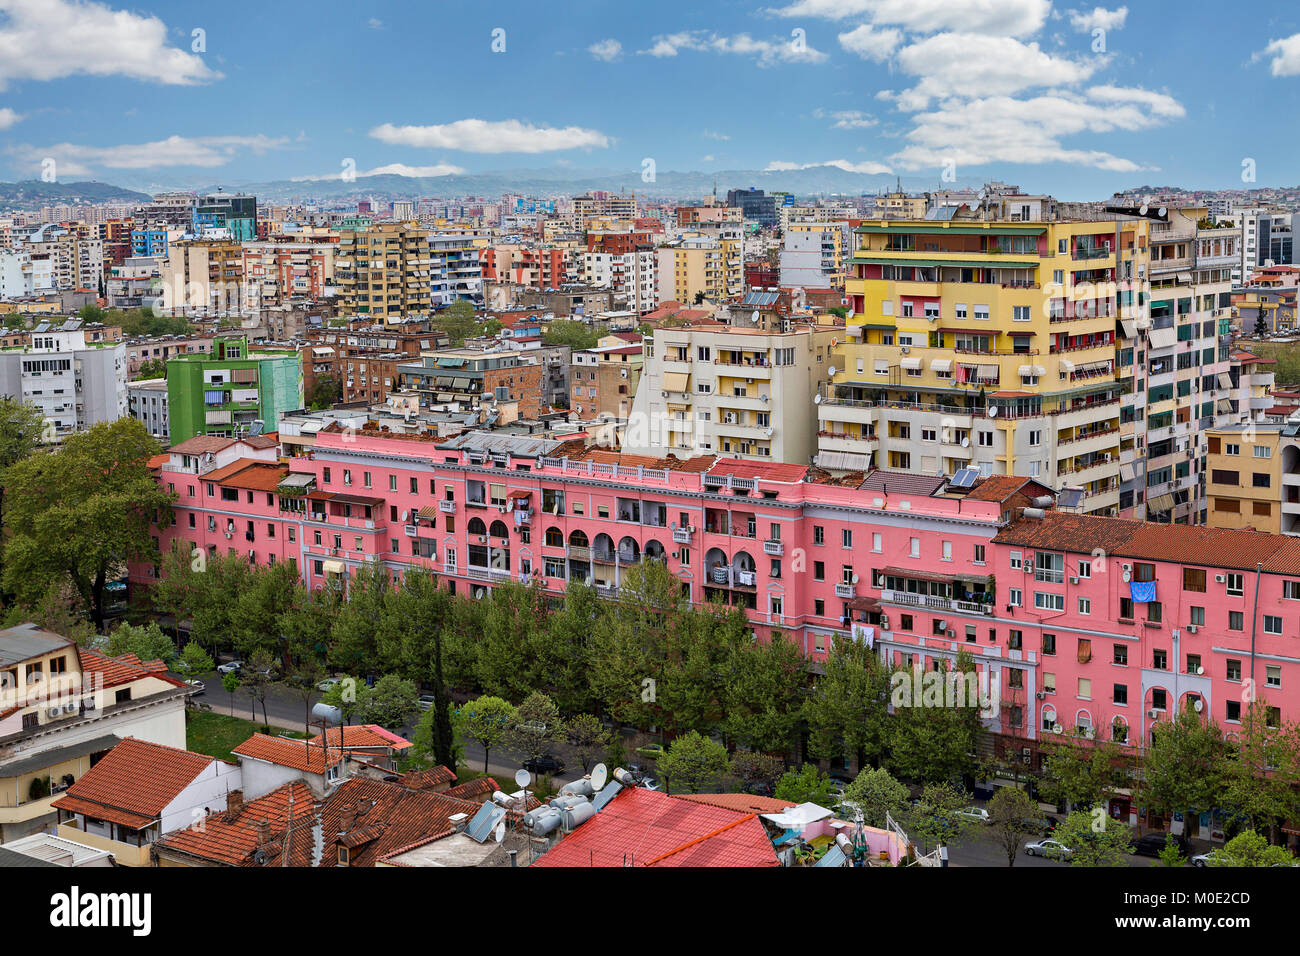 Colorful apartment buildings in Tirana, Albania - Stock Image